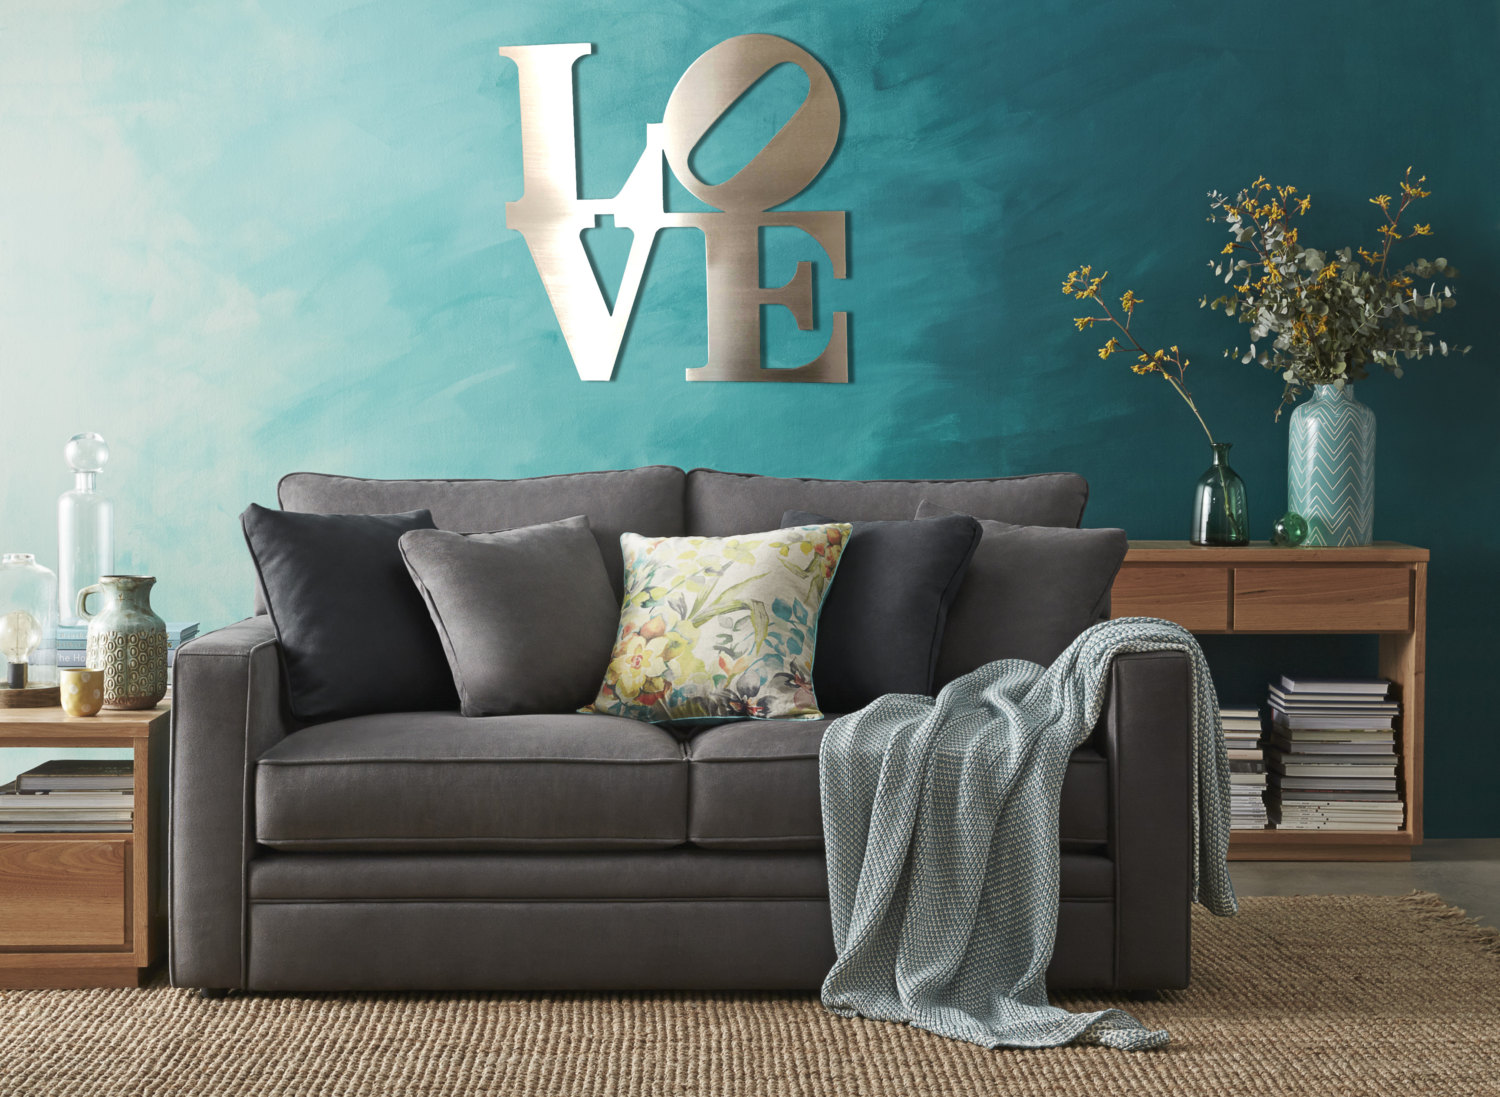 love metal wall art and coverings